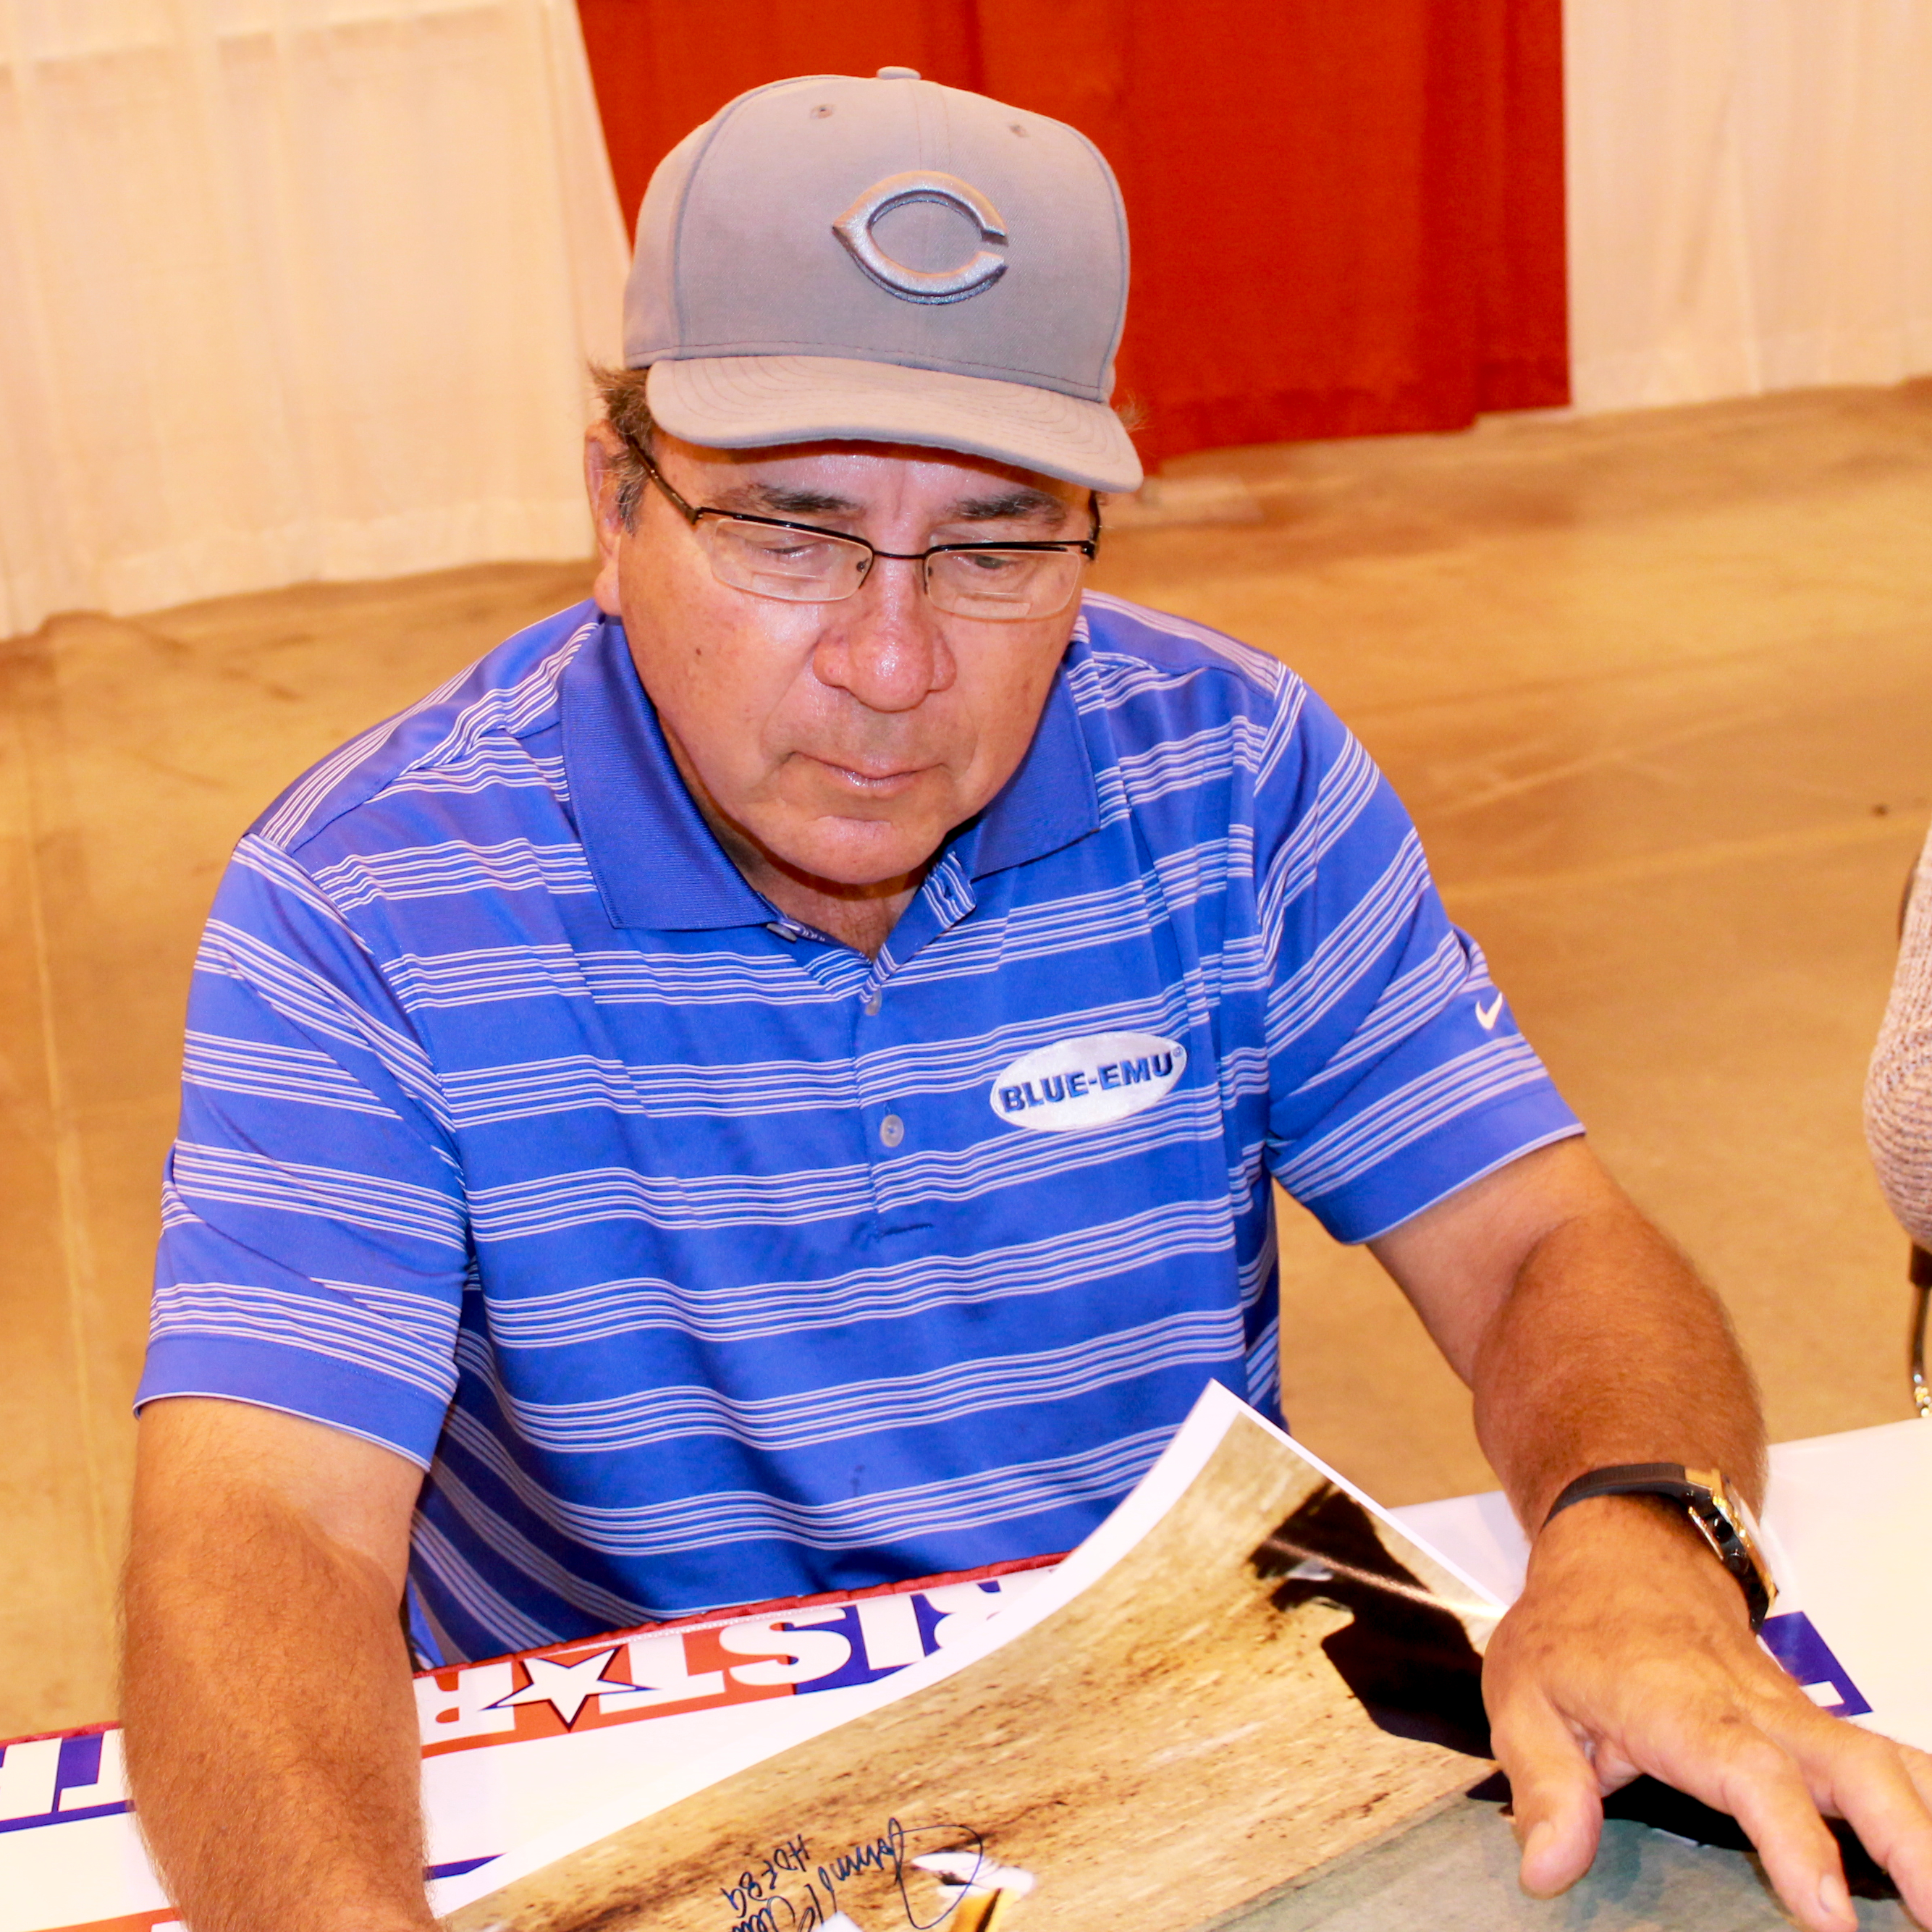 File:Johnny Bench signs autographs in May 2014.jpg ...